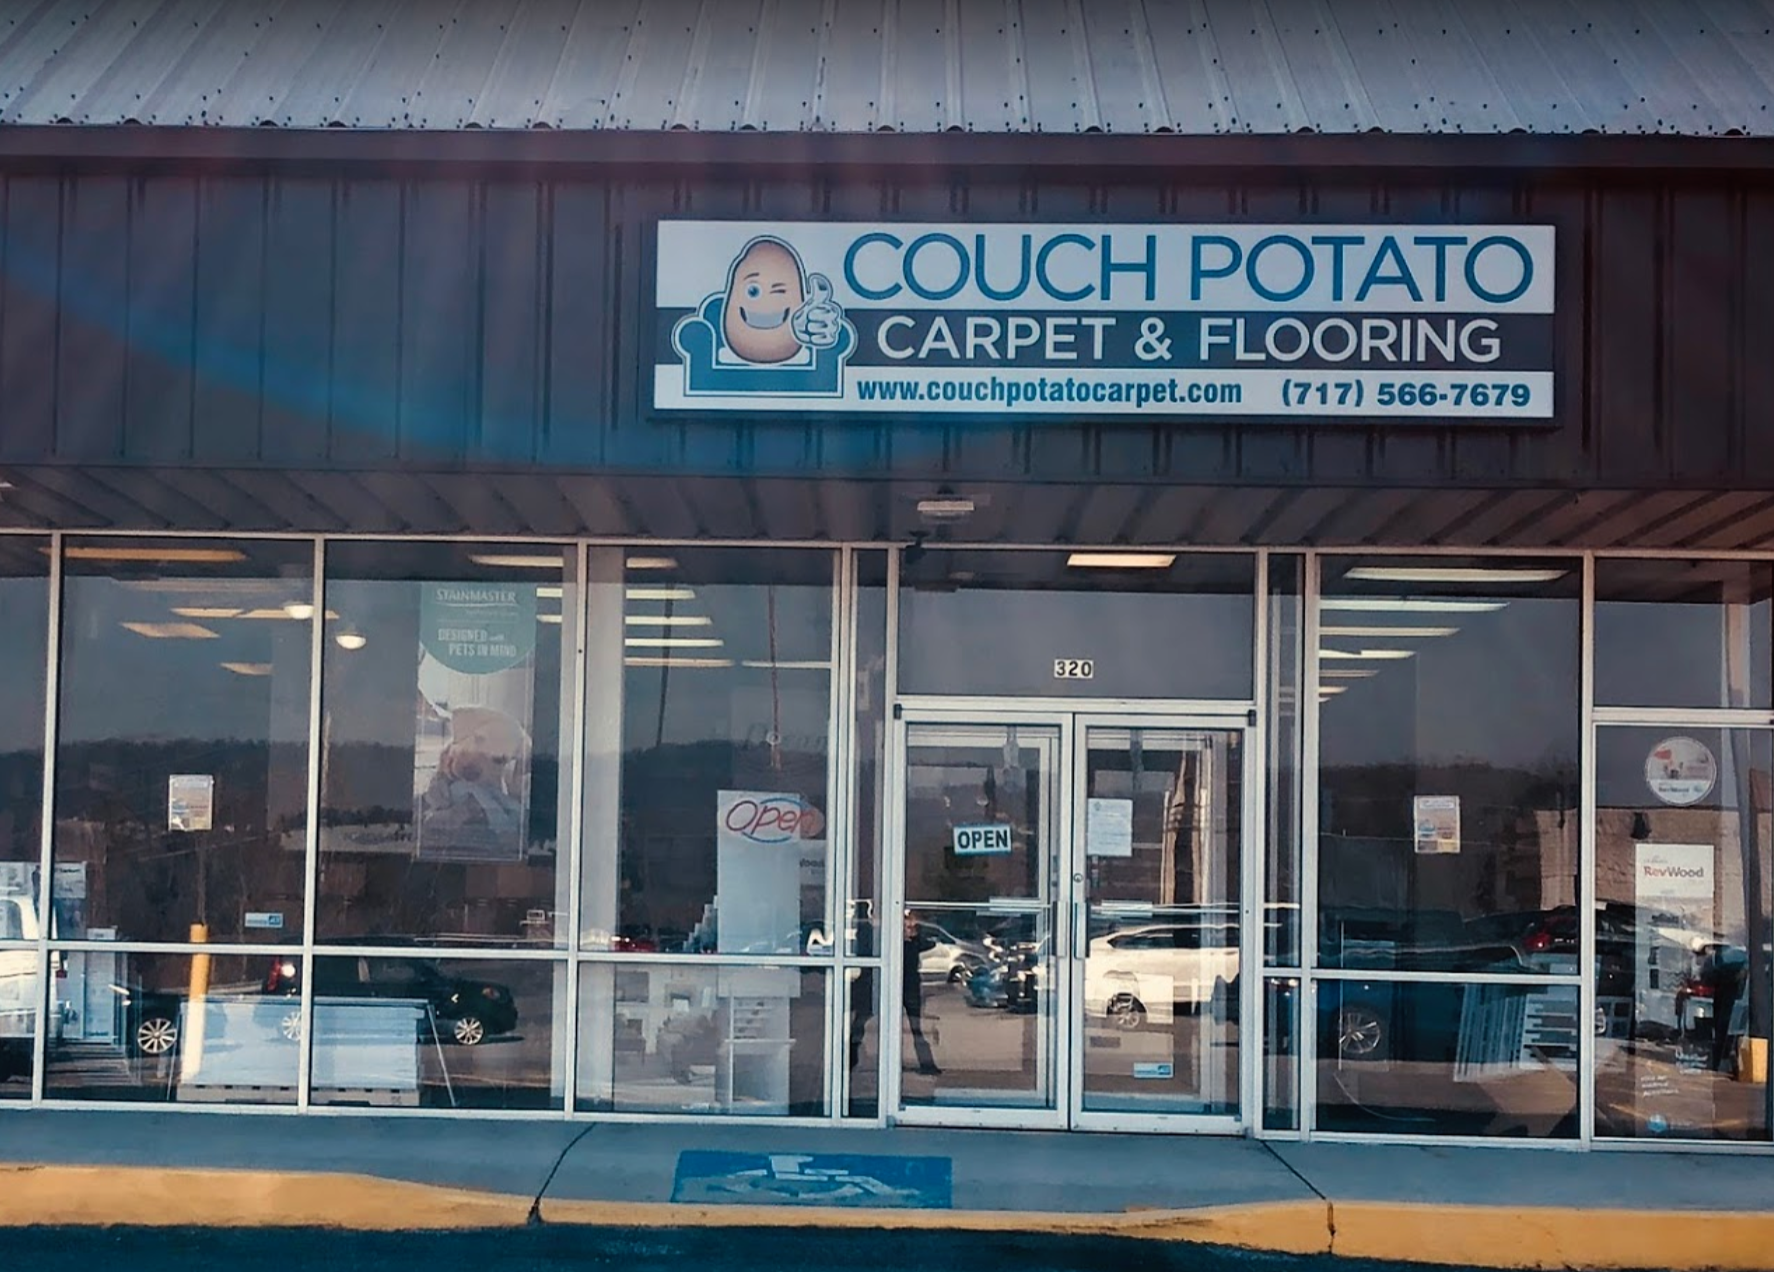 Couch Potato Carpet And Flooring store front